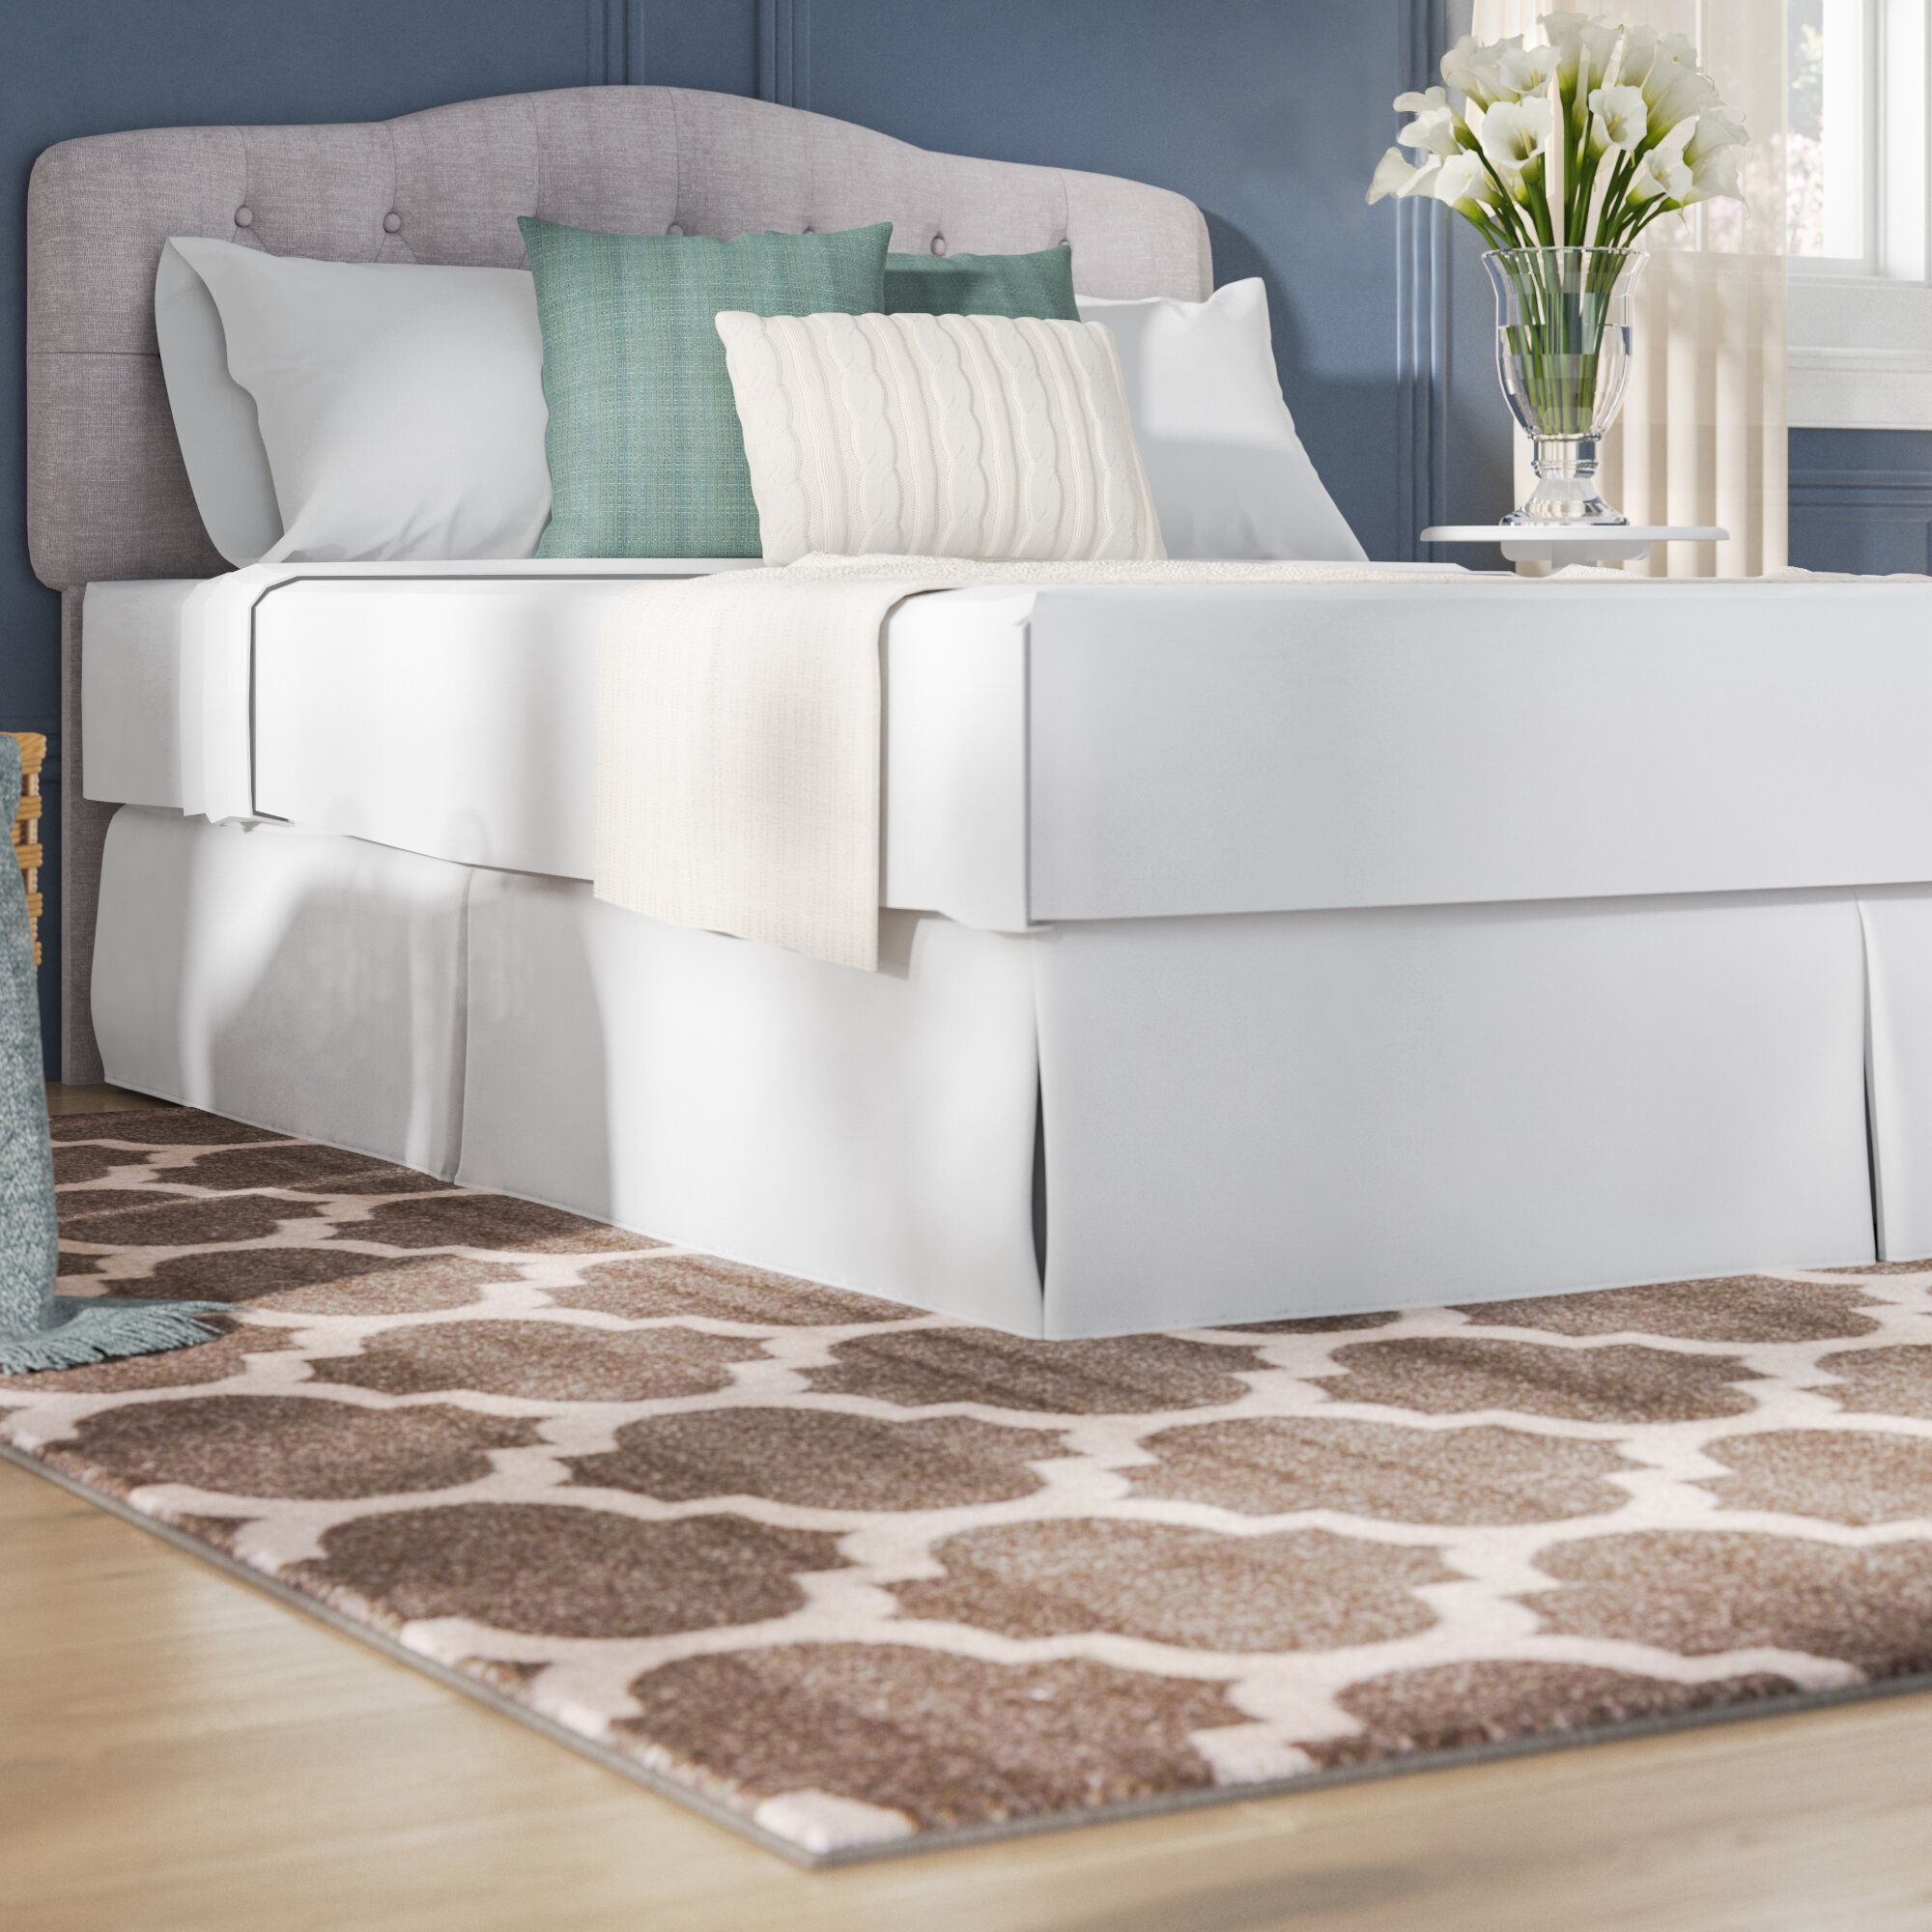 White Bed Skirts You Ll Love In 2020 Wayfair